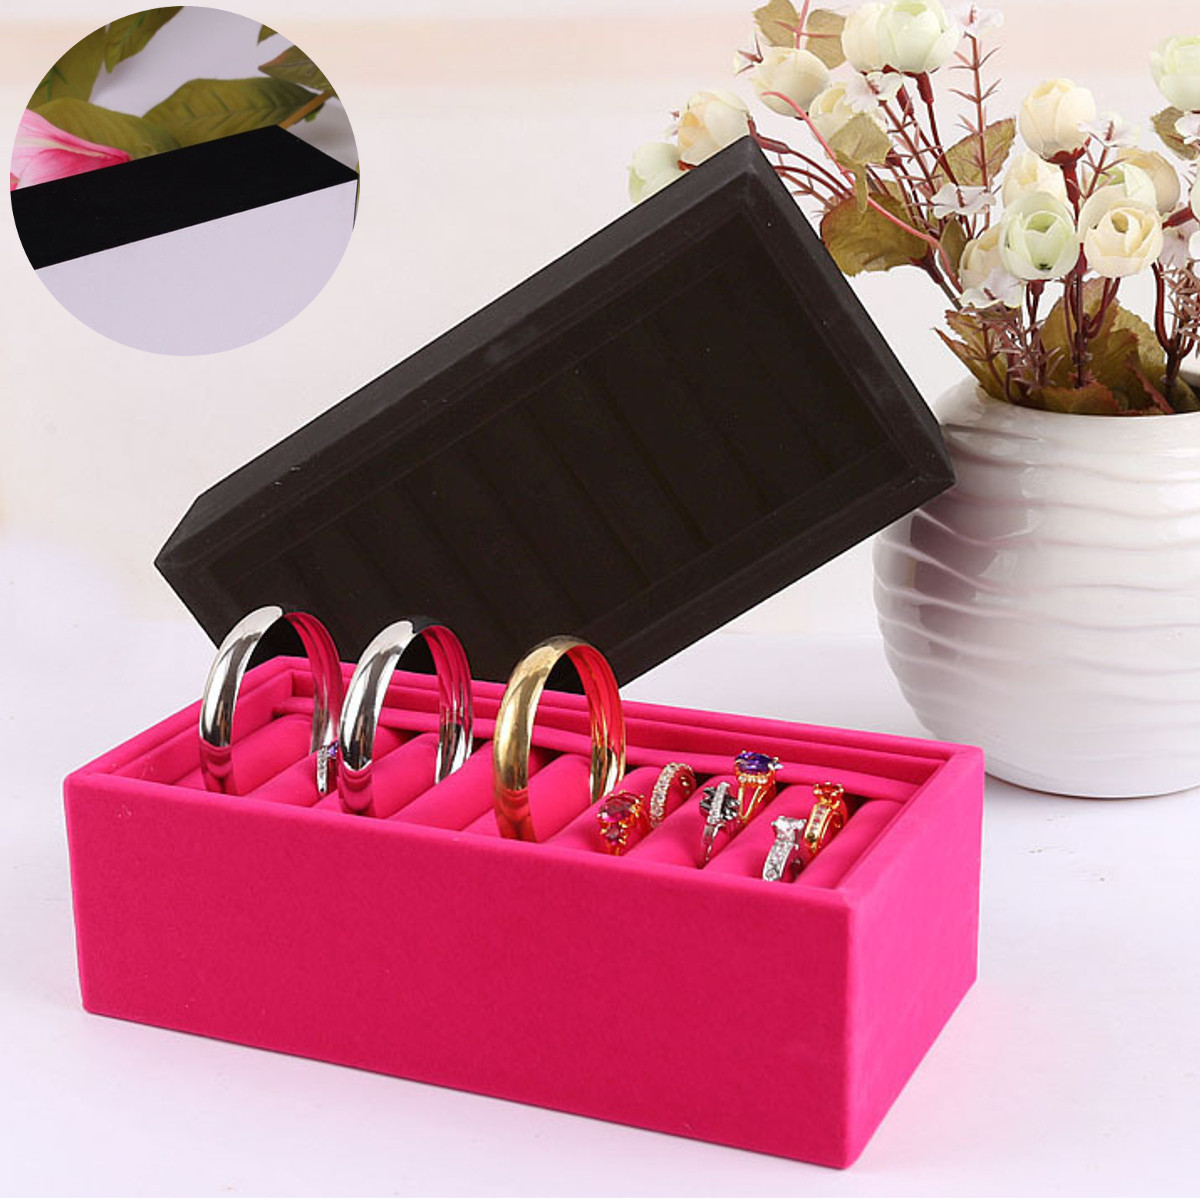 Ring Earrings Jewelry Bracelet Box Storage Case Display Stand Holder